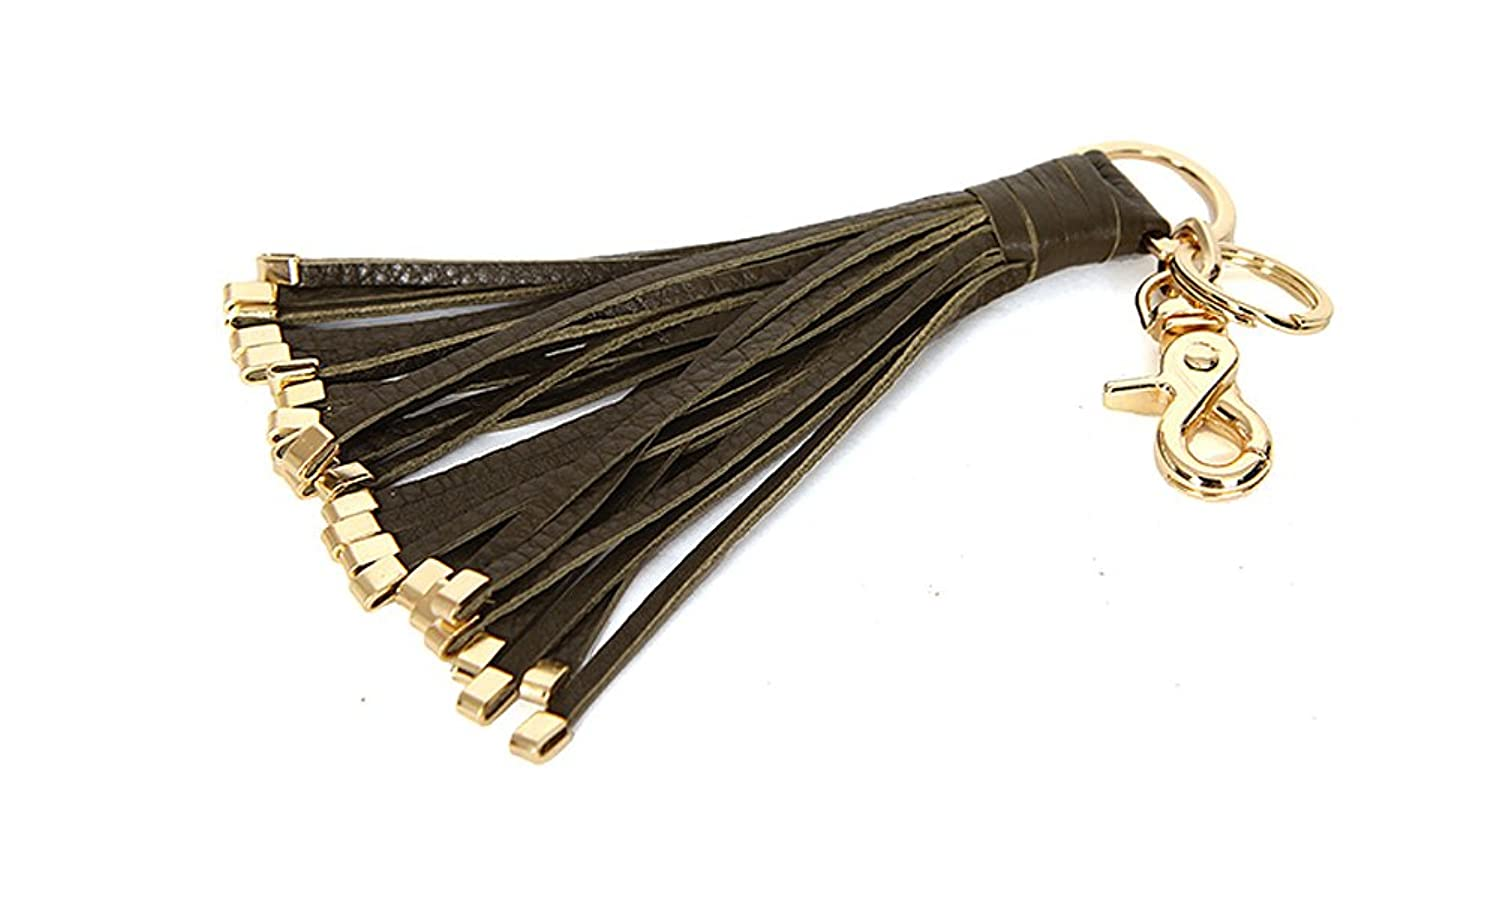 J&S Women's Handbag Accessories Leather Tassel Charm Key Chain Ring 7 Colors